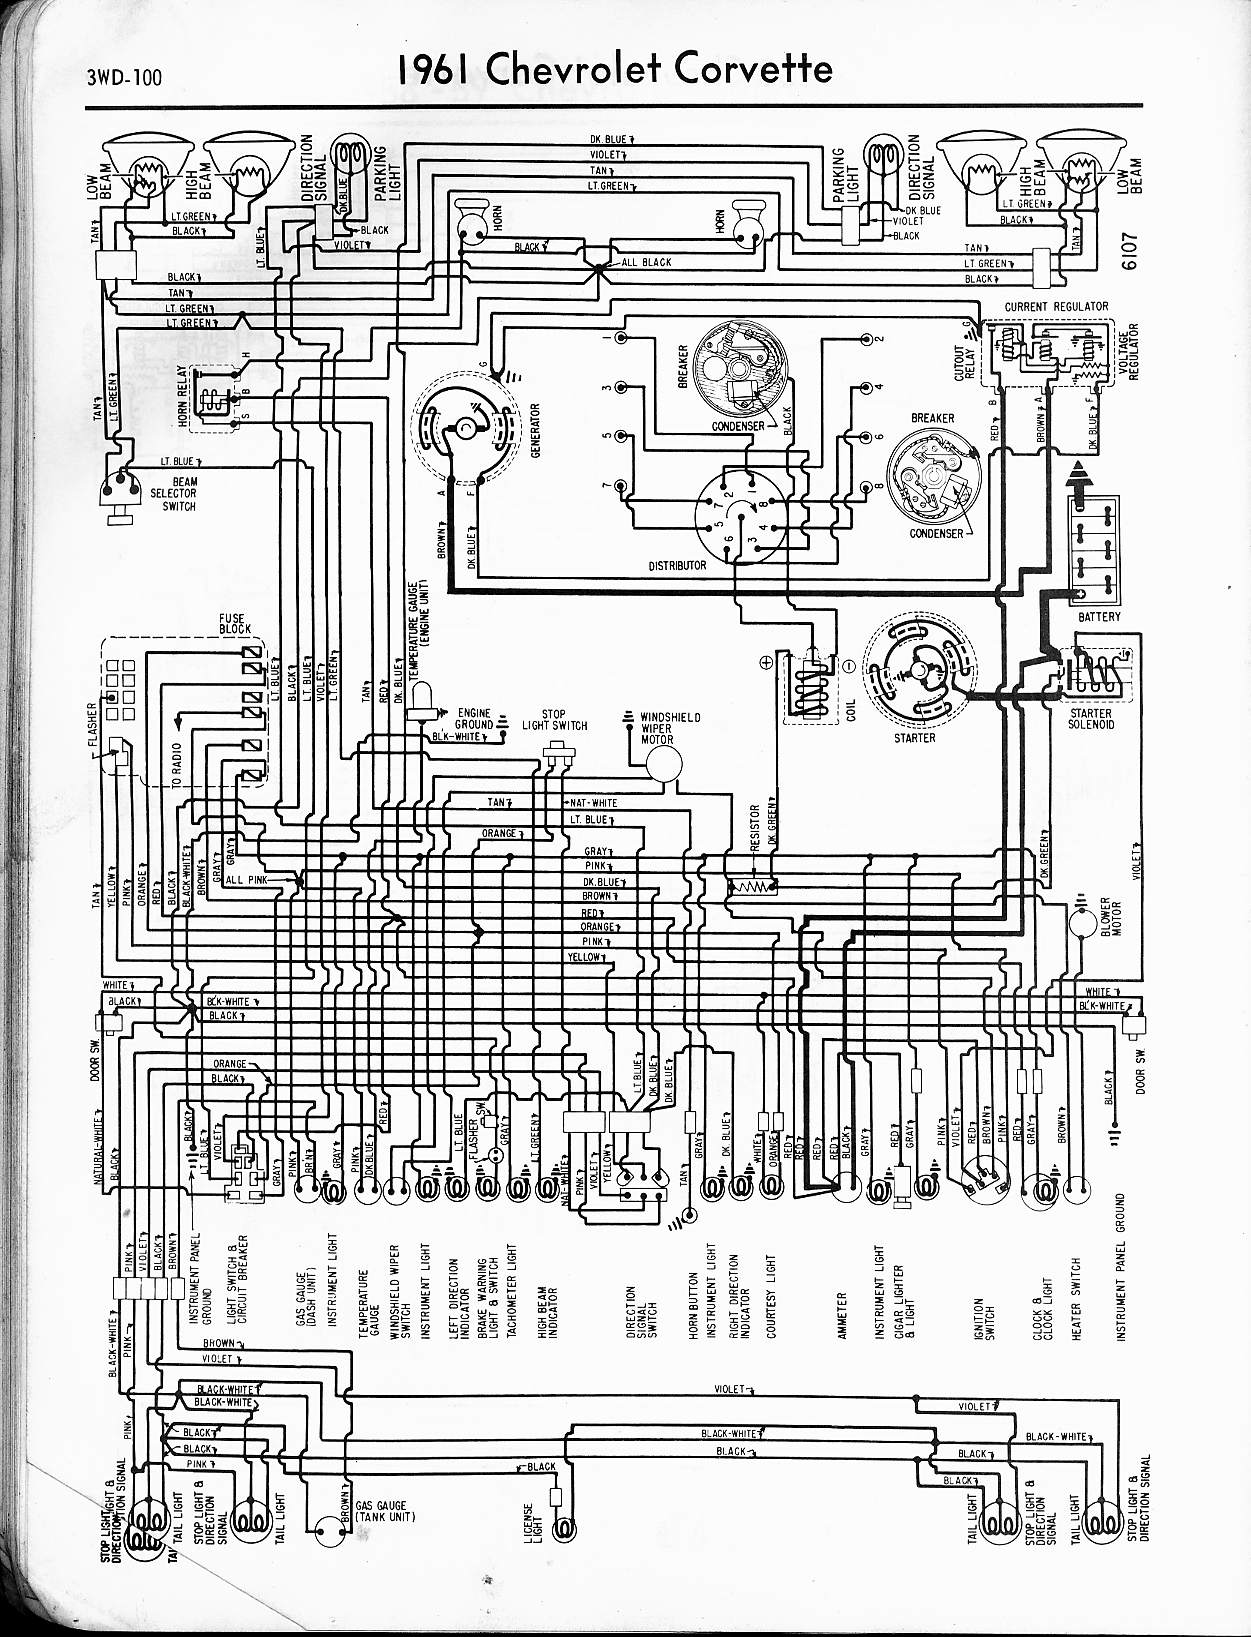 1961 Impala Wiring Diagram Schematics Vw Beetle 1980 57 65 Chevy Diagrams Ignition Switch